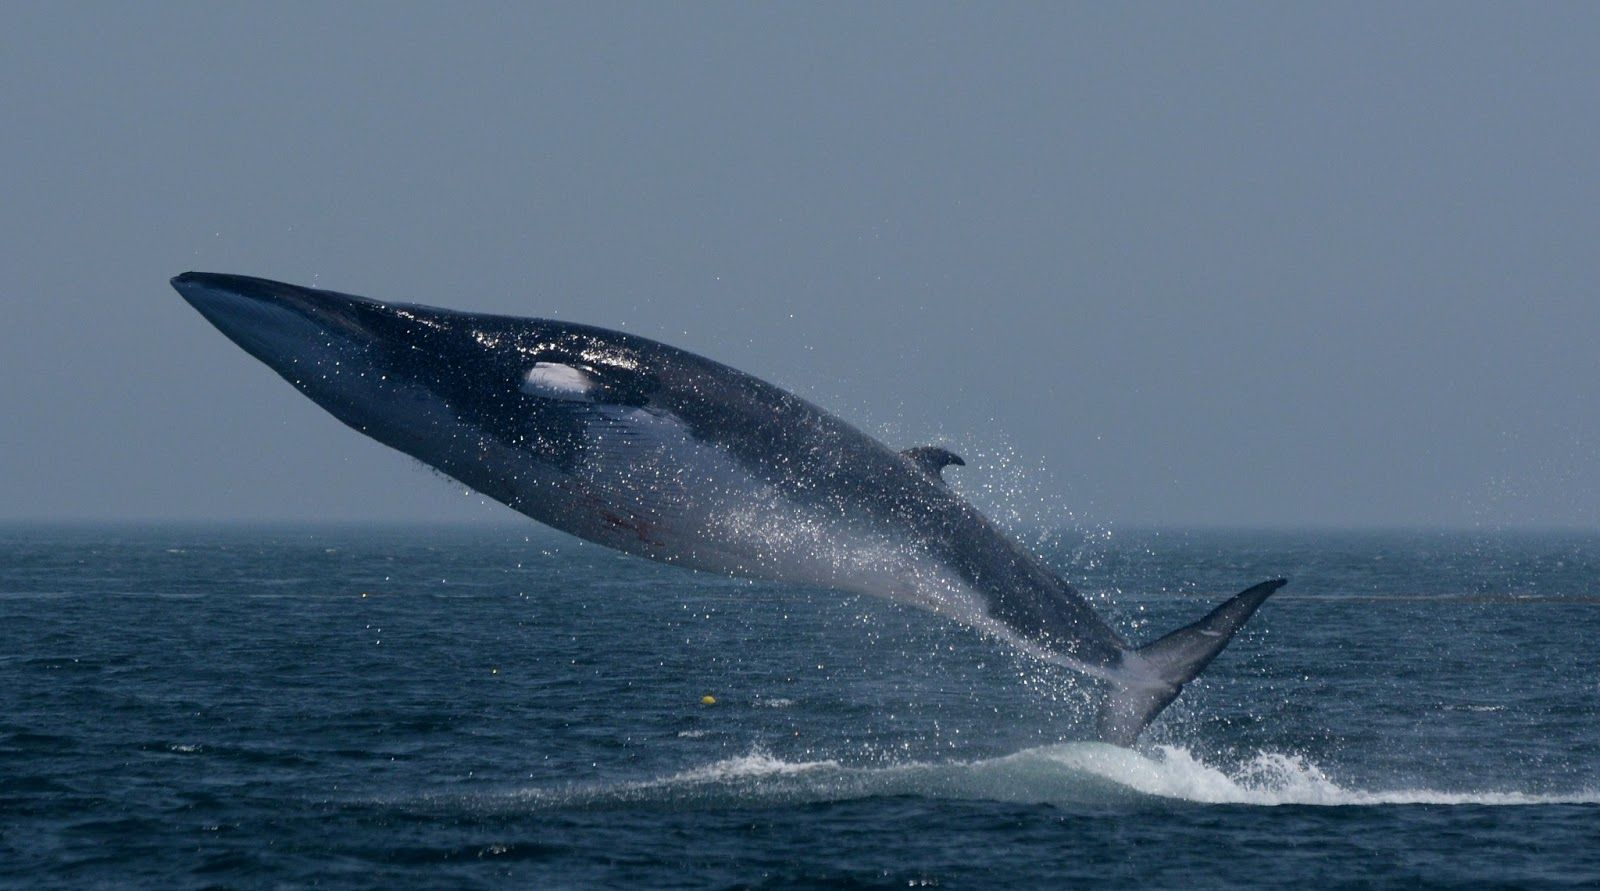 A large finback whale leaping out of the water.